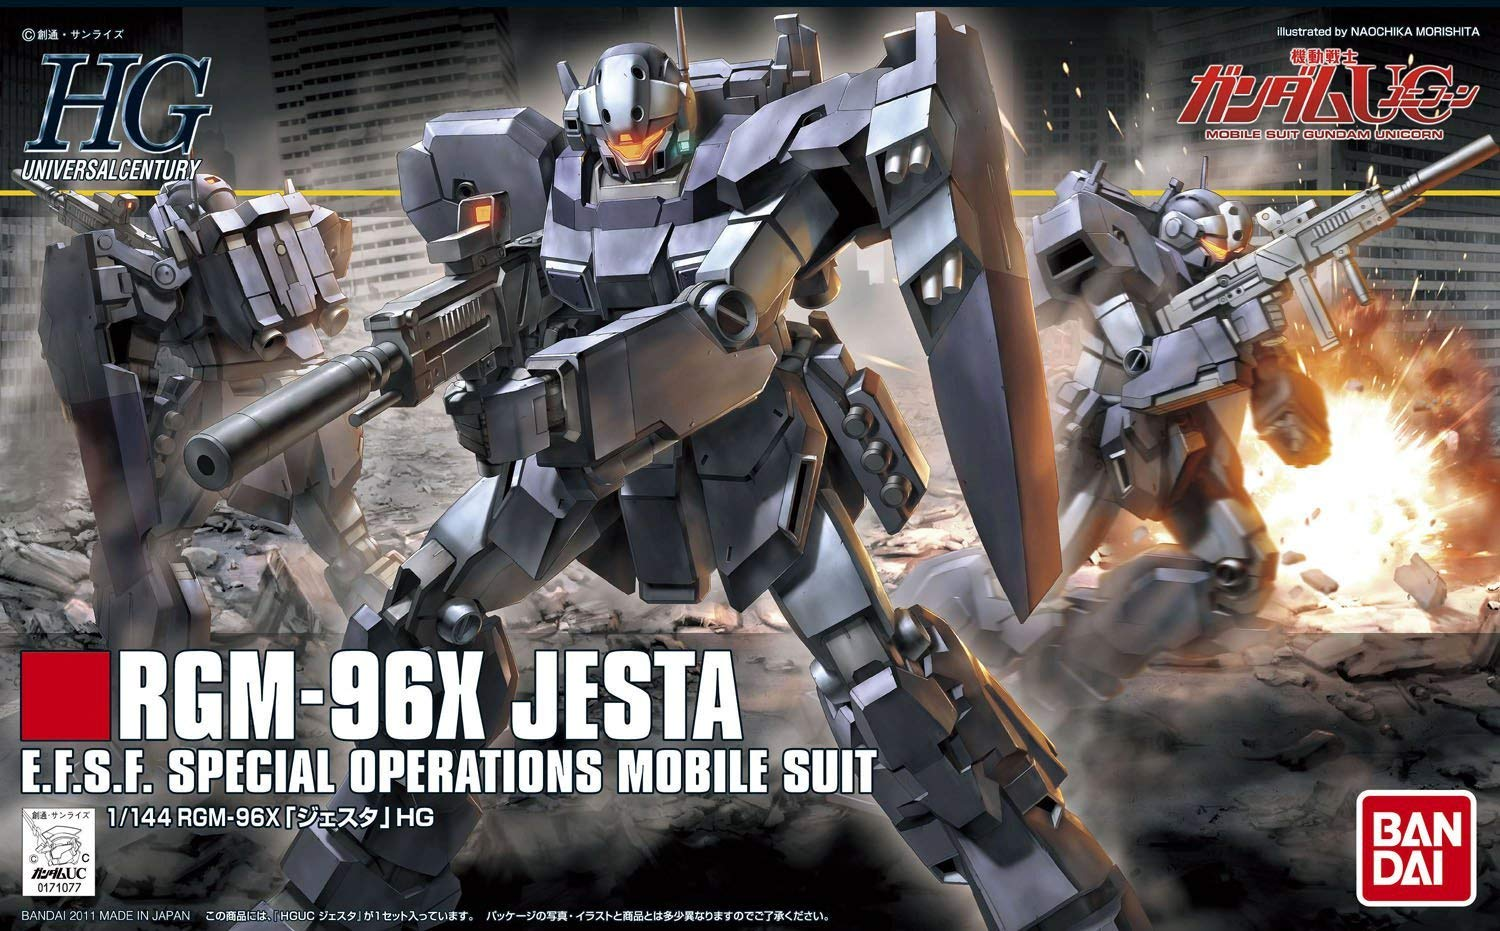 Gundam: High Grade Jesta 1:144 Model Kit